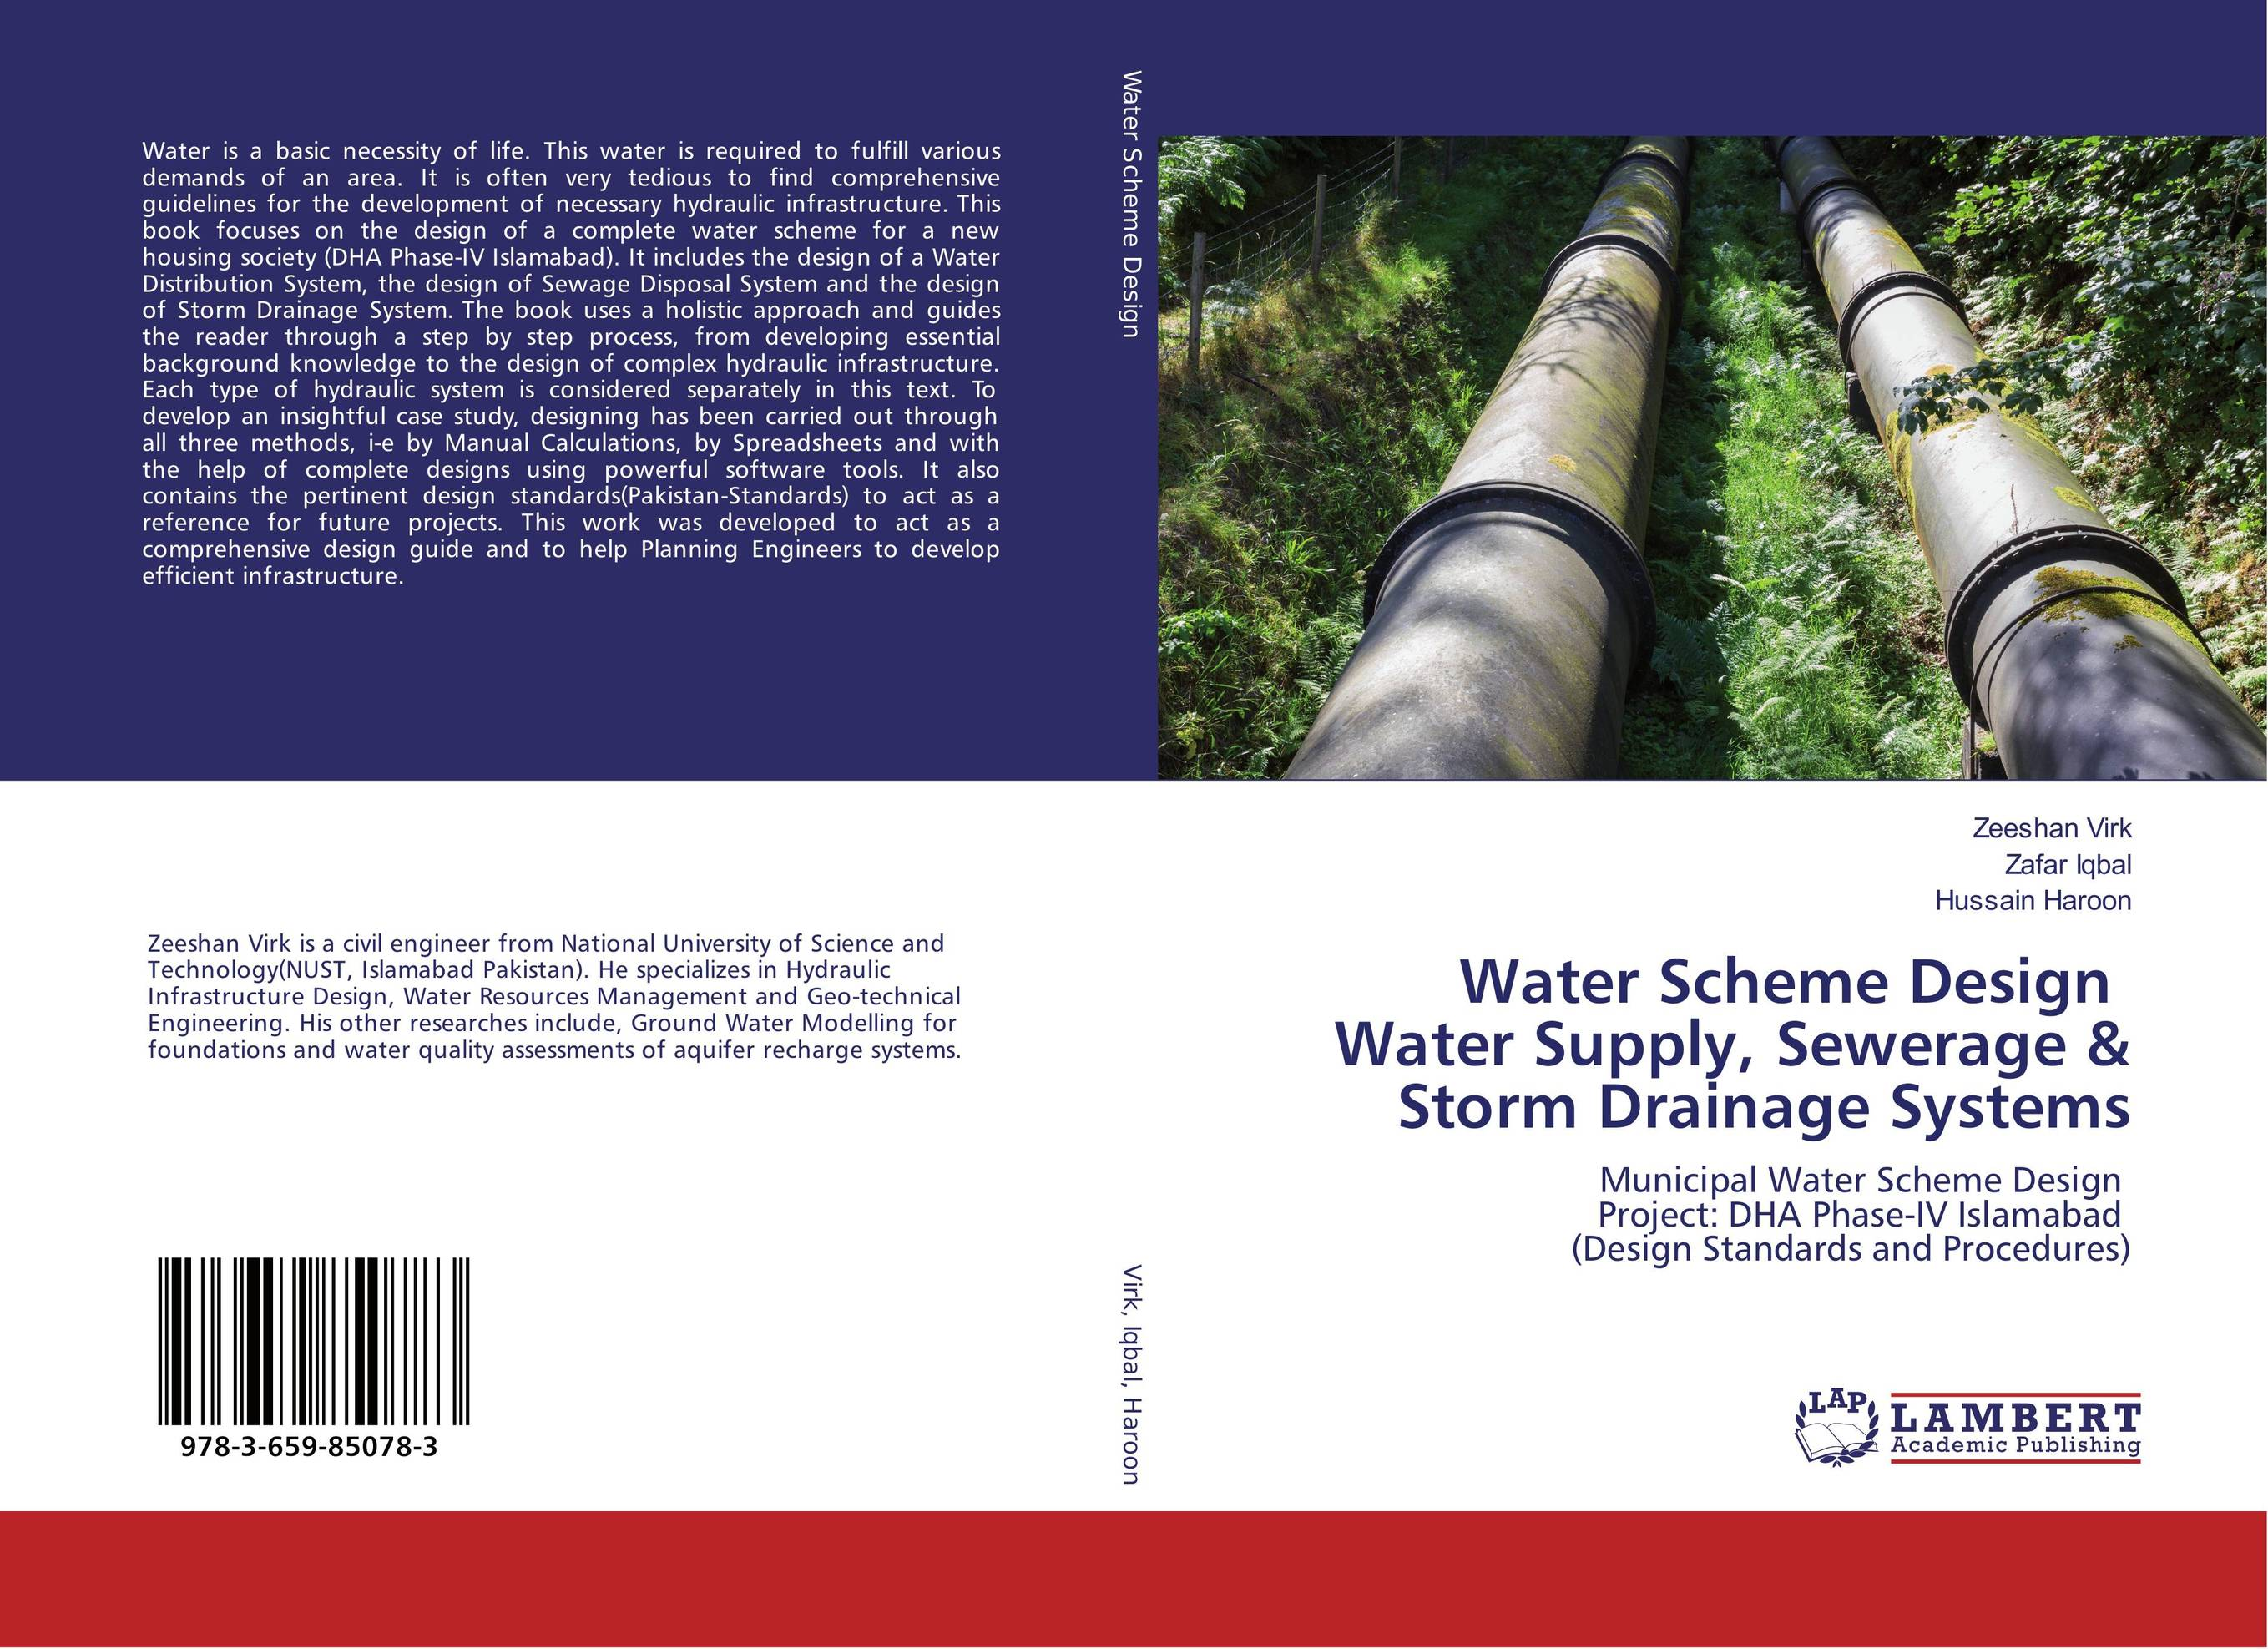 Water Scheme Design Water Supply, Sewerage & Storm Drainage Systems bride of the water god v 3